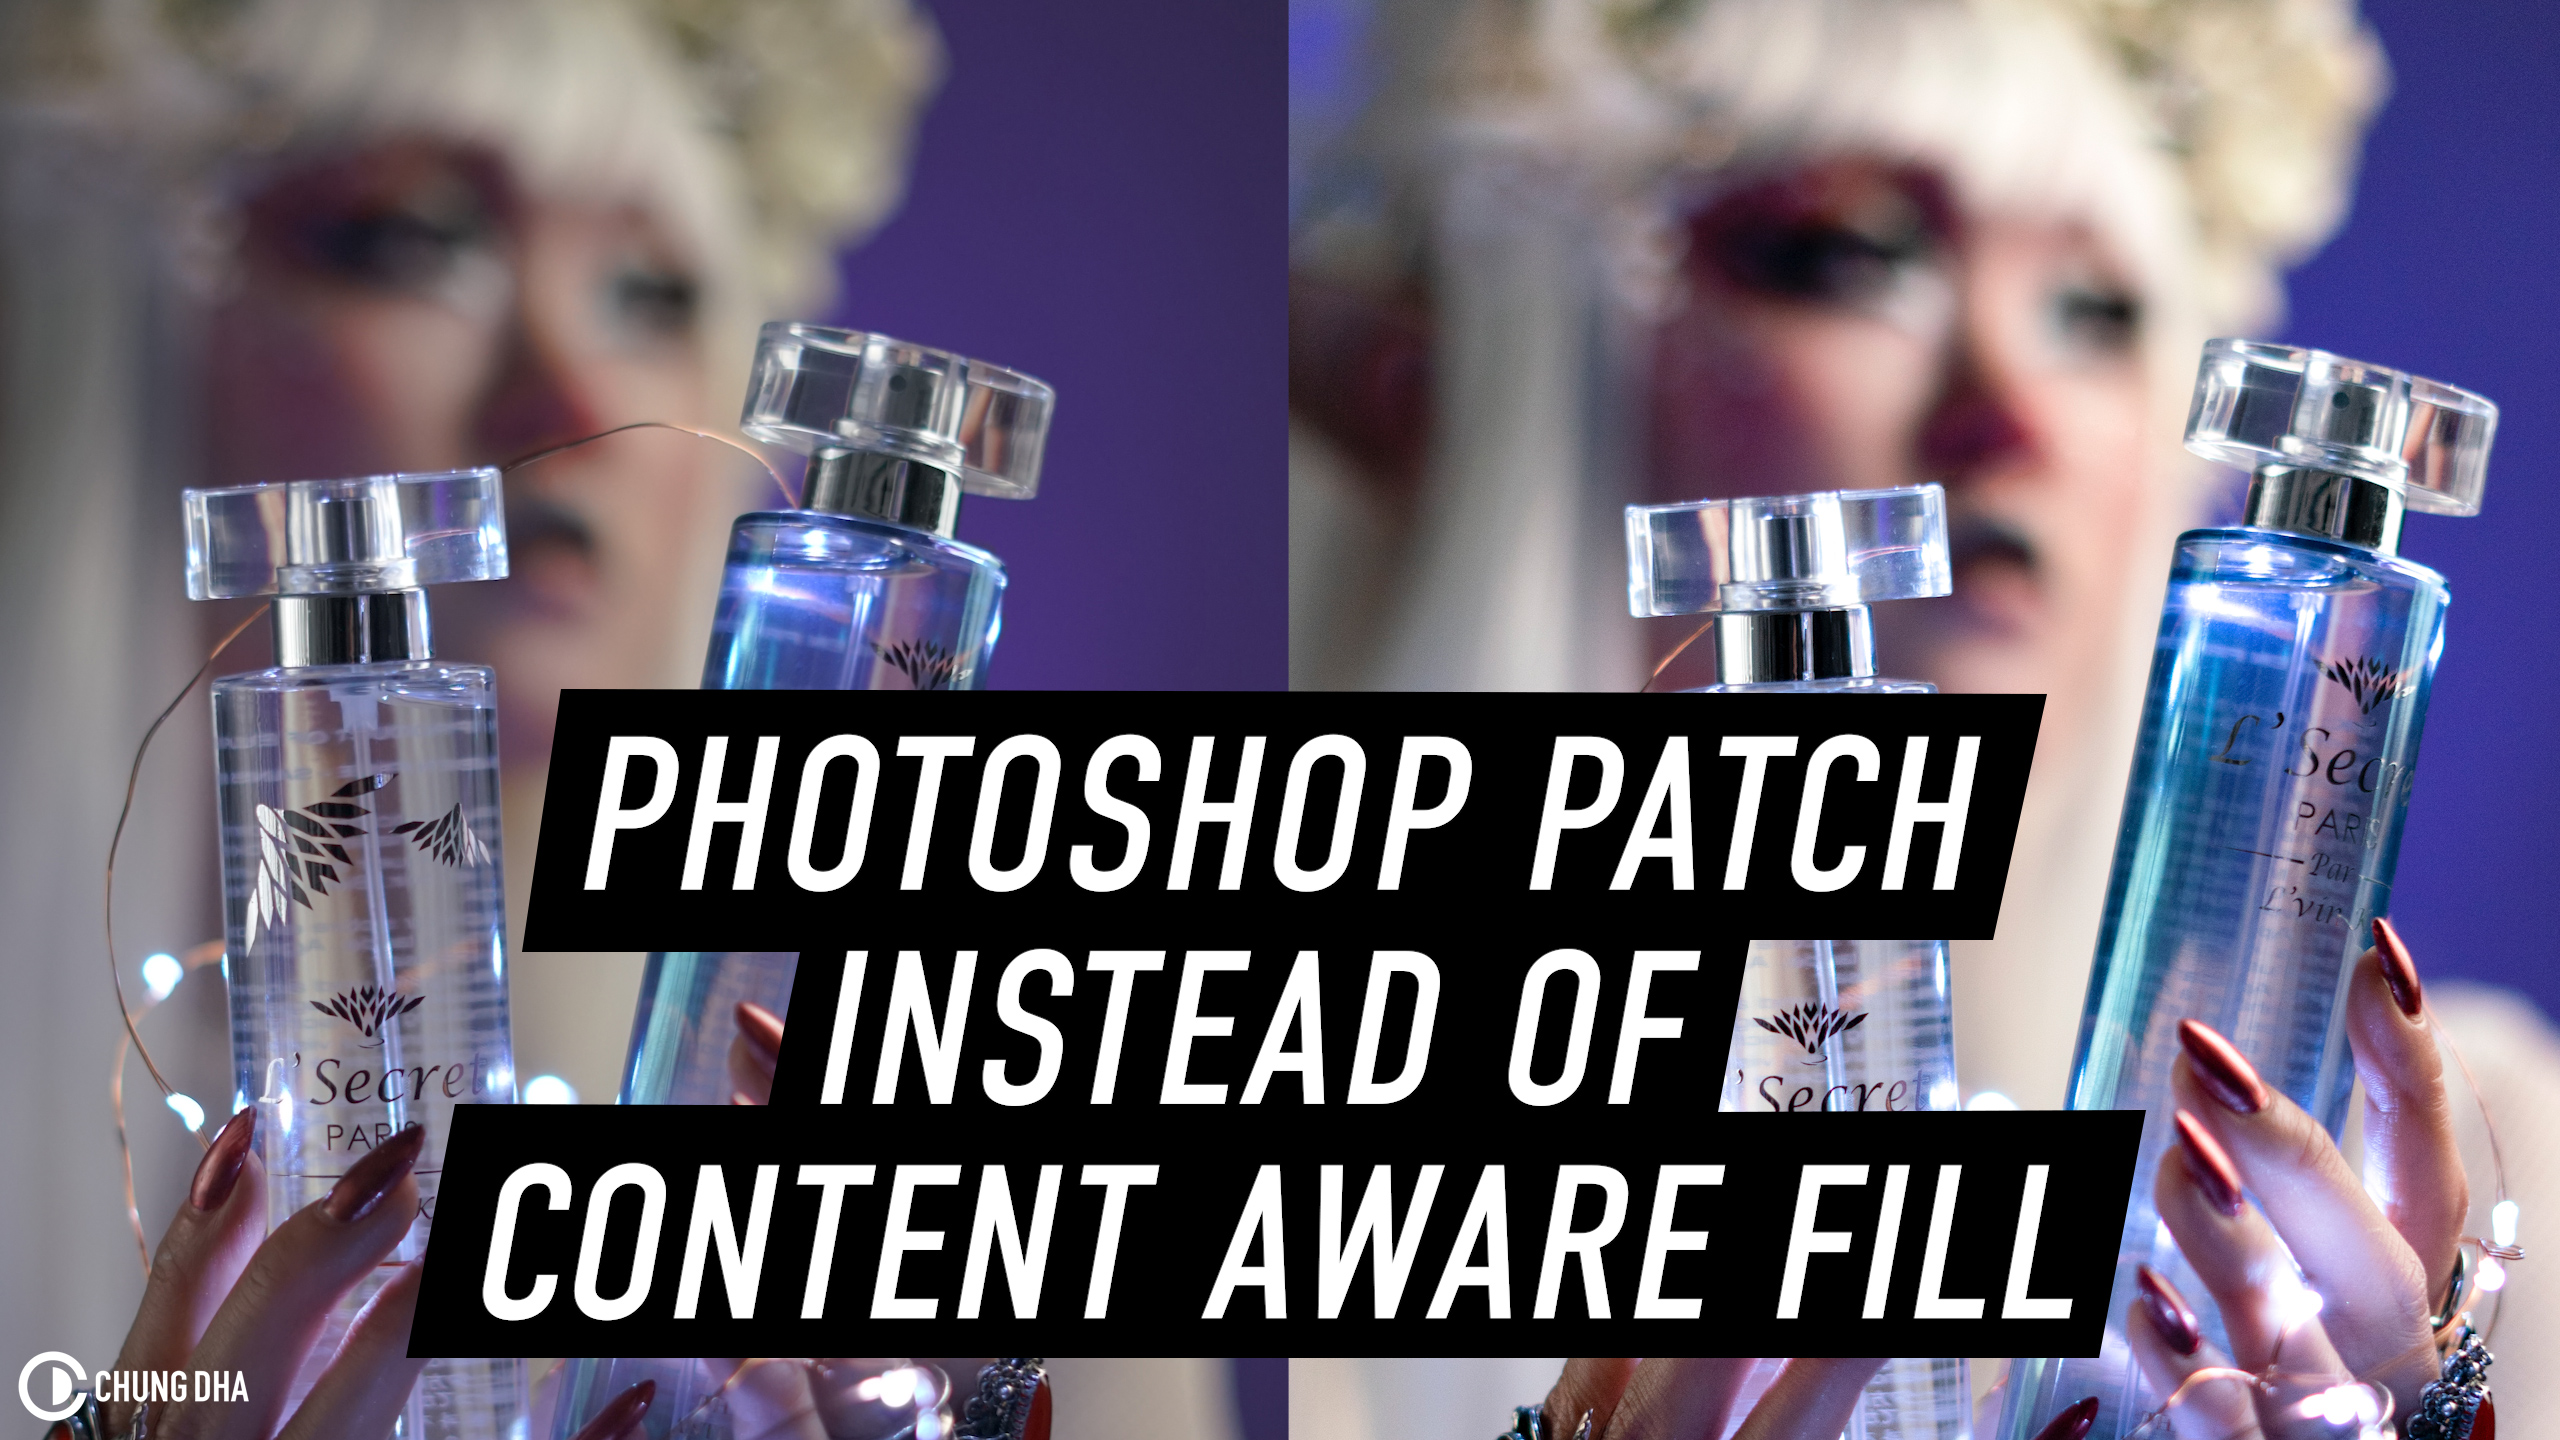 Photoshop Patch Tool instead of Content Aware Fill